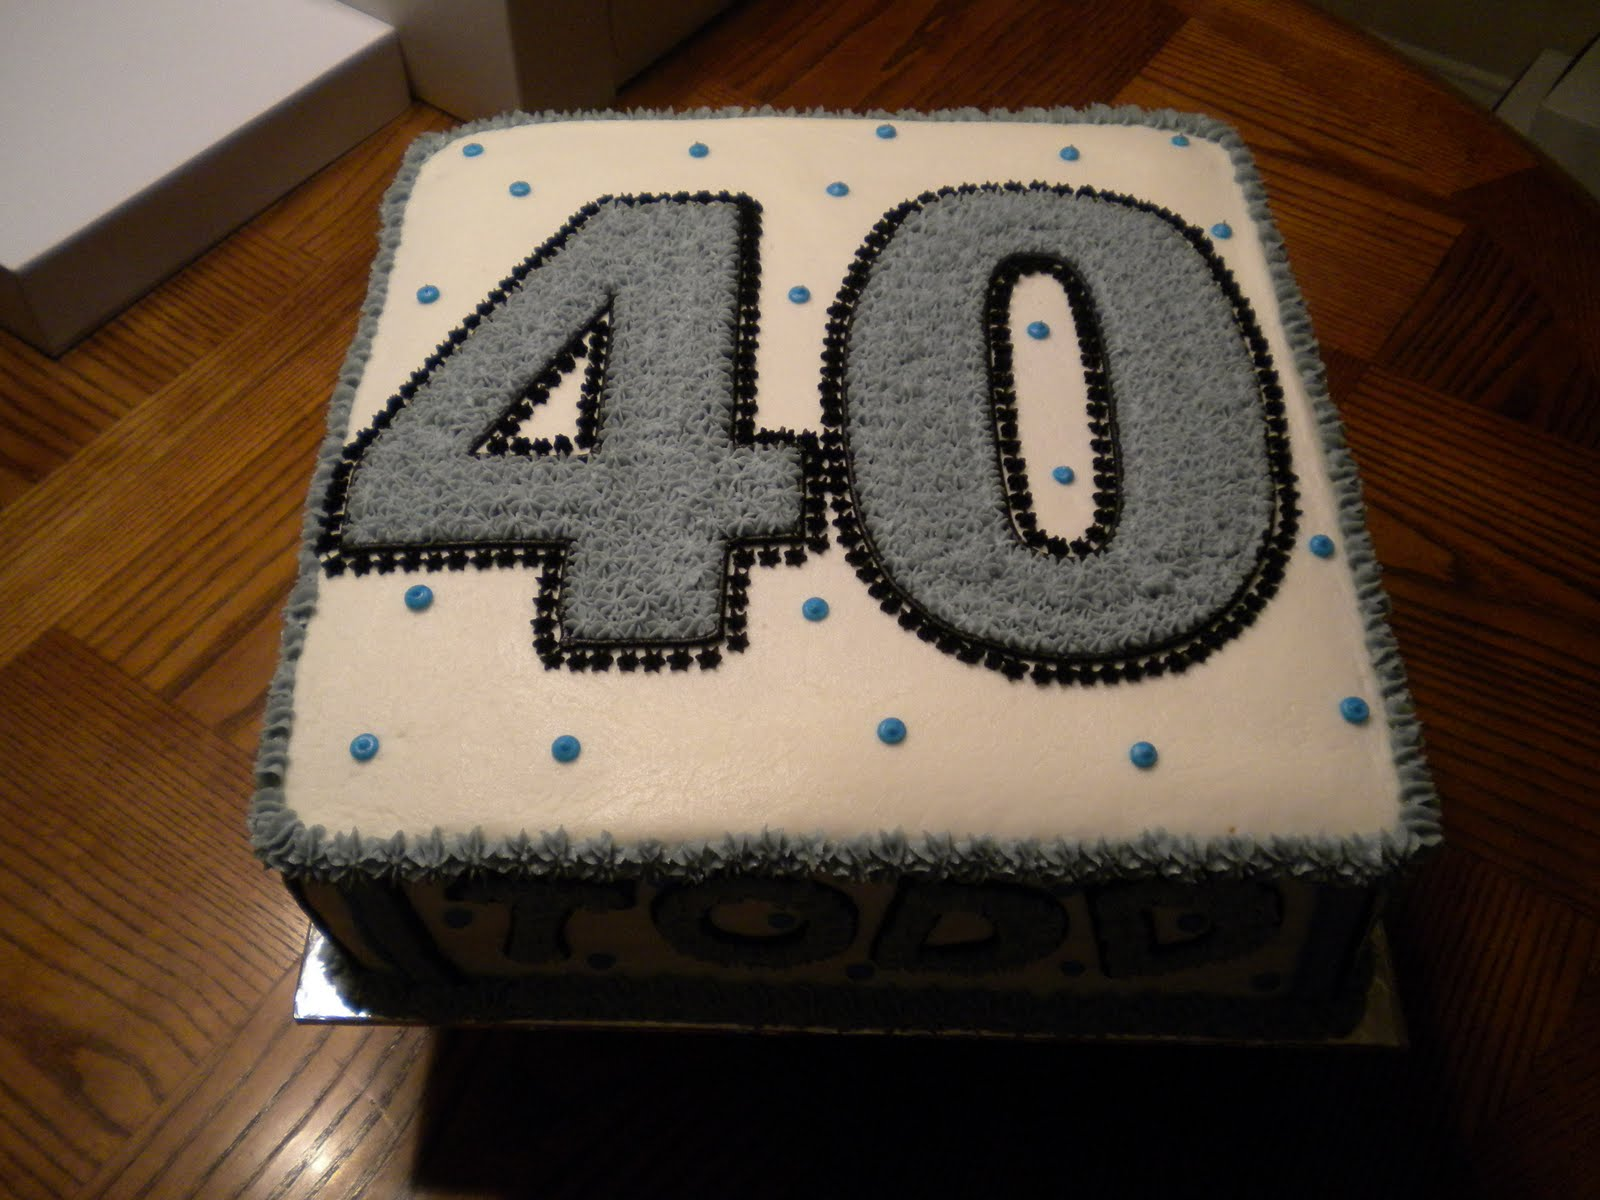 This Was A Cake For Todd Conways 40th Birthday It 12 Inch